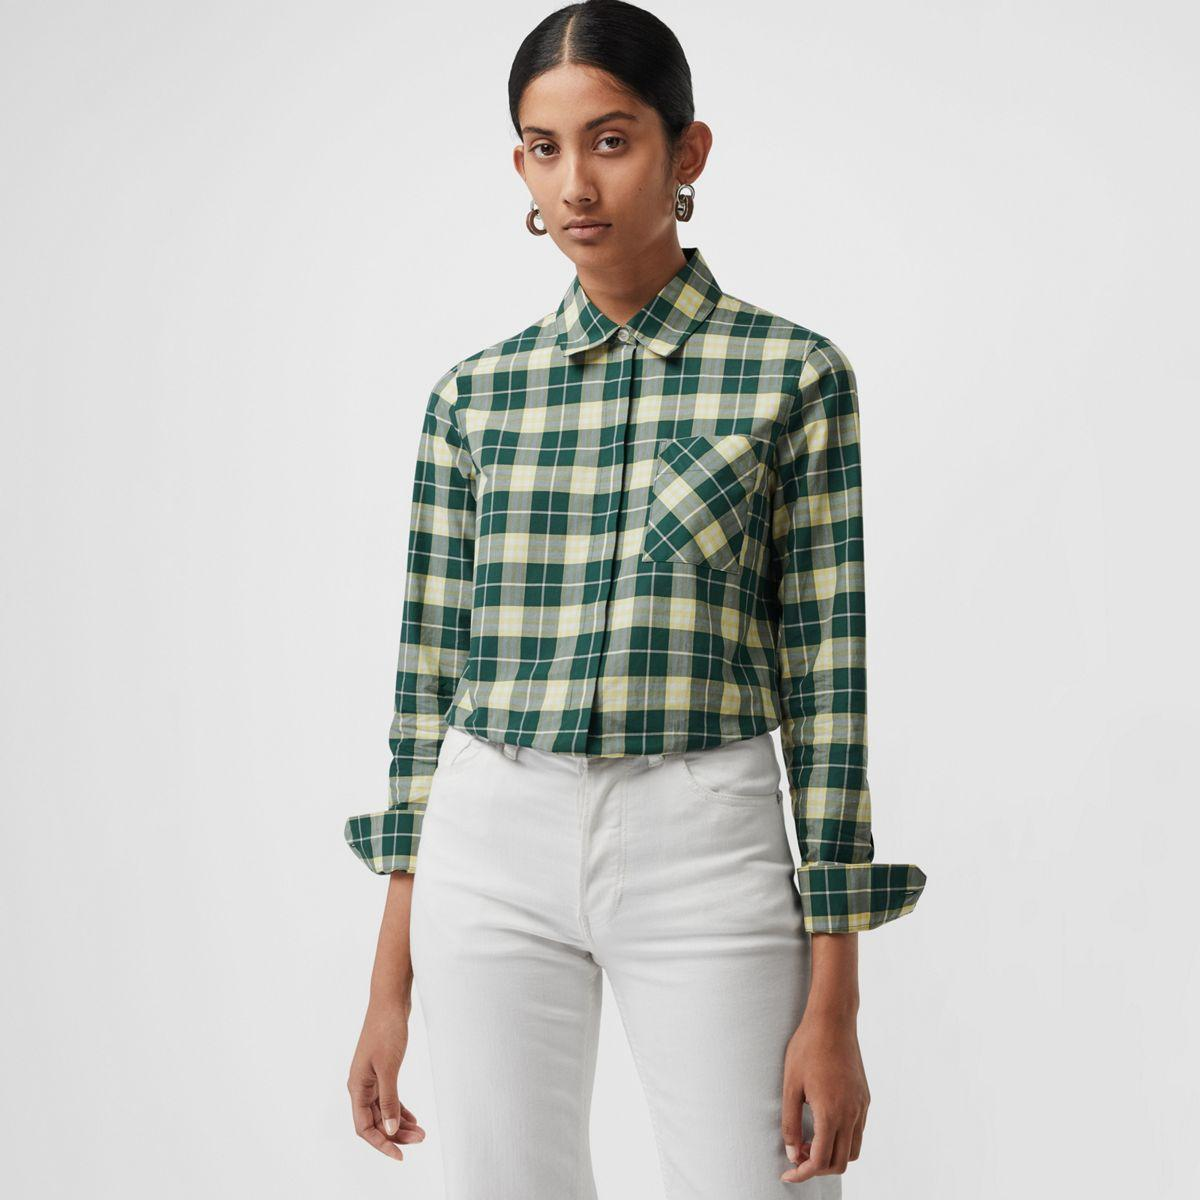 52736621e4f0ab Lyst - Burberry Check Cotton Shirt in Green - Save 29%